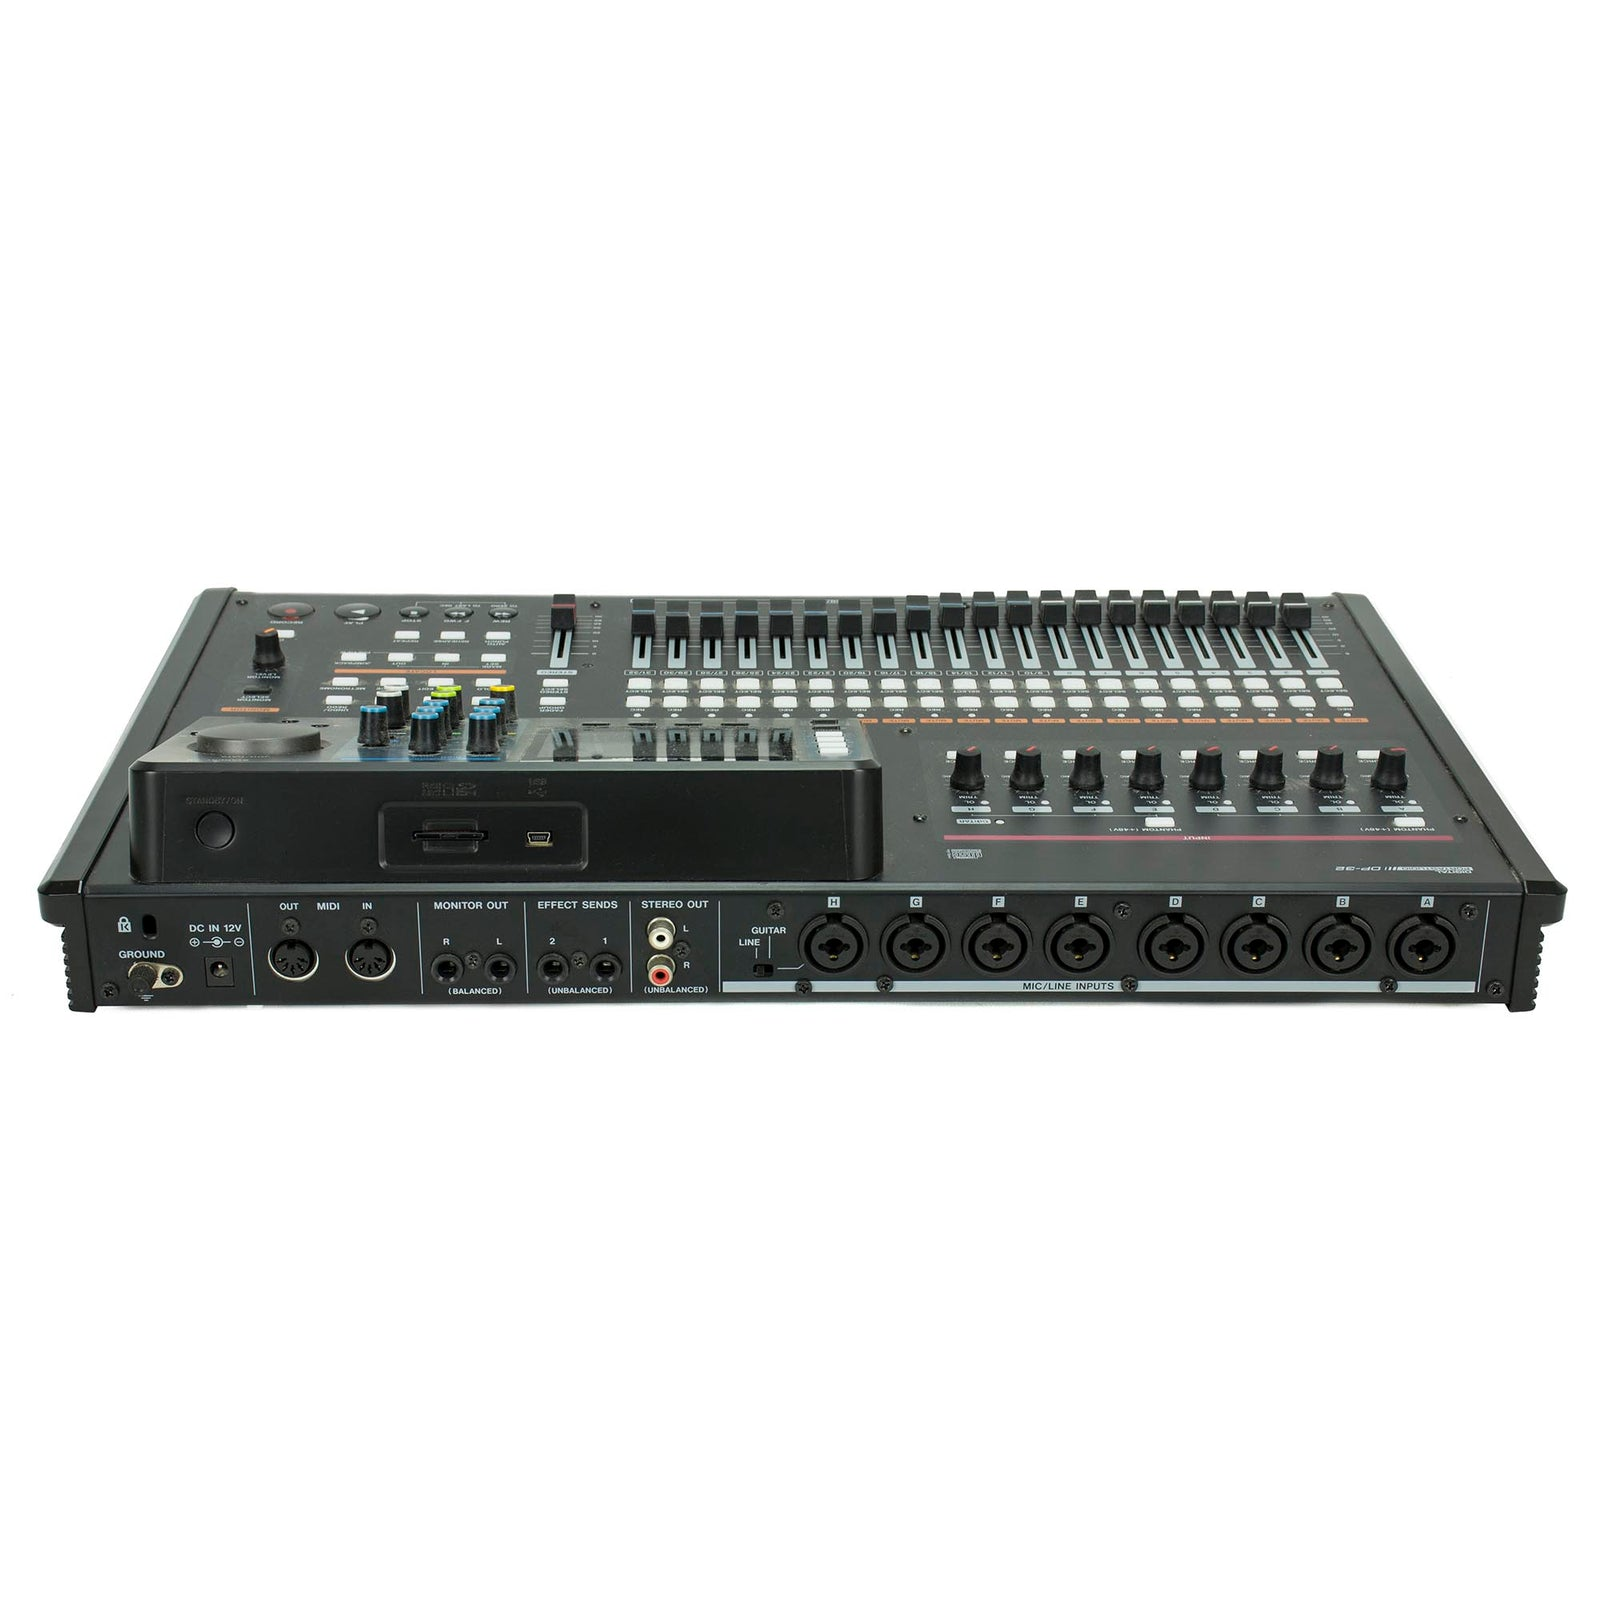 Tascam DP-32 Digital Multi-Track Recorder With CD Burner - Used